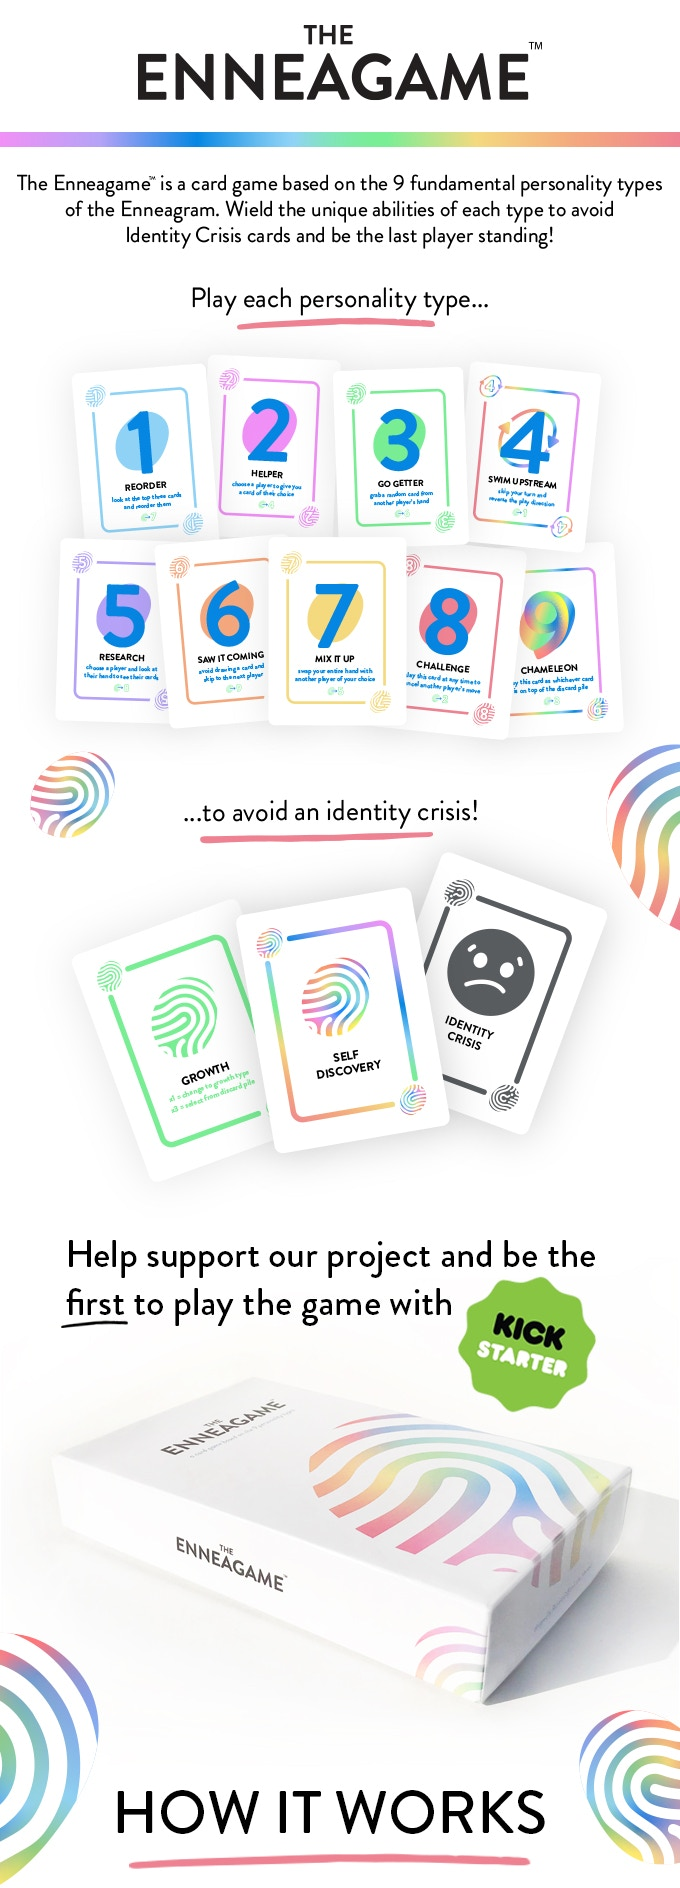 The Enneagame™: A Card Game Based On The Enneagram by The